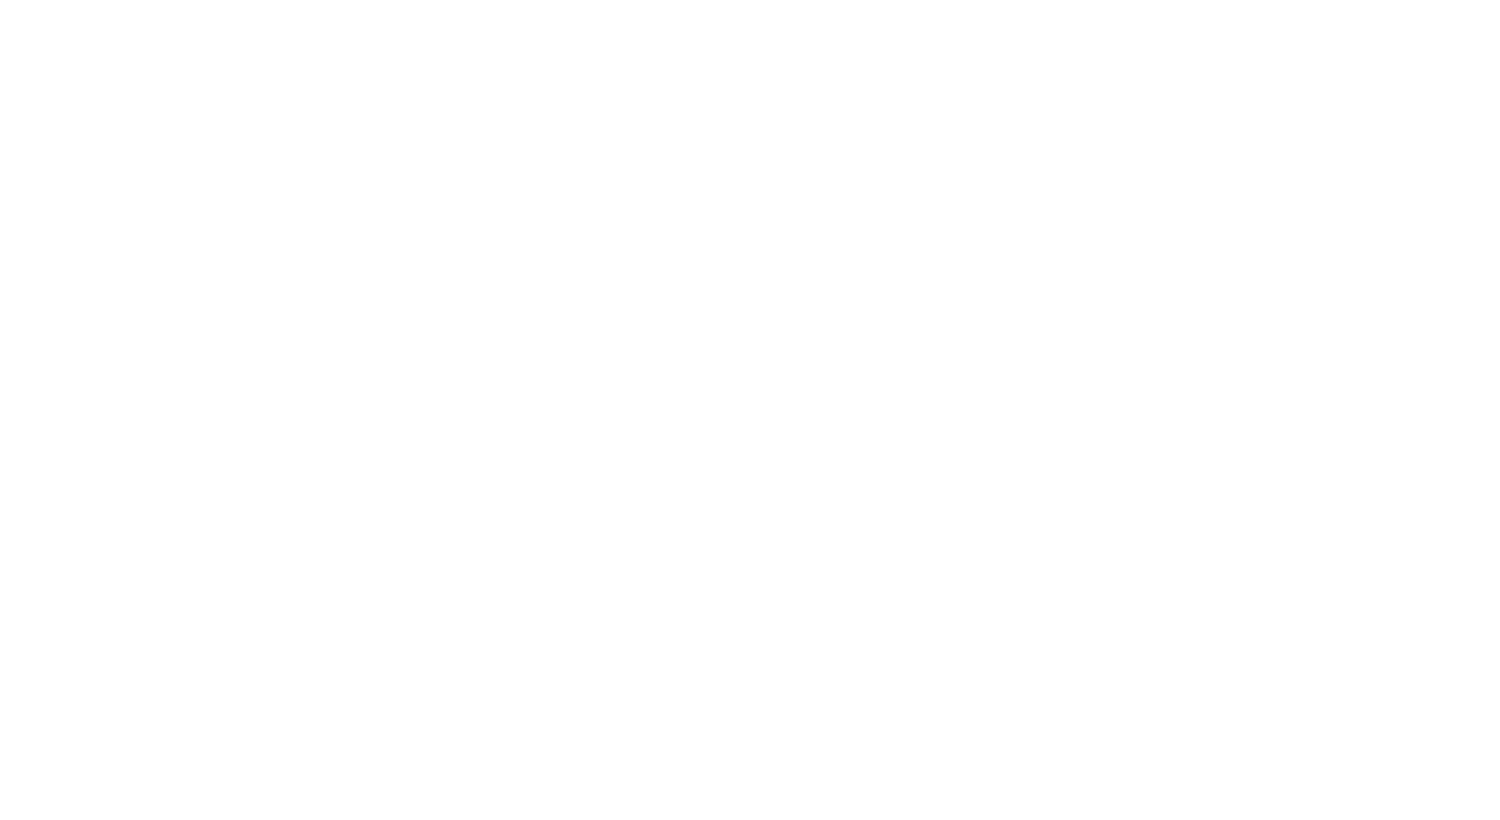 Fullerton College Percussion